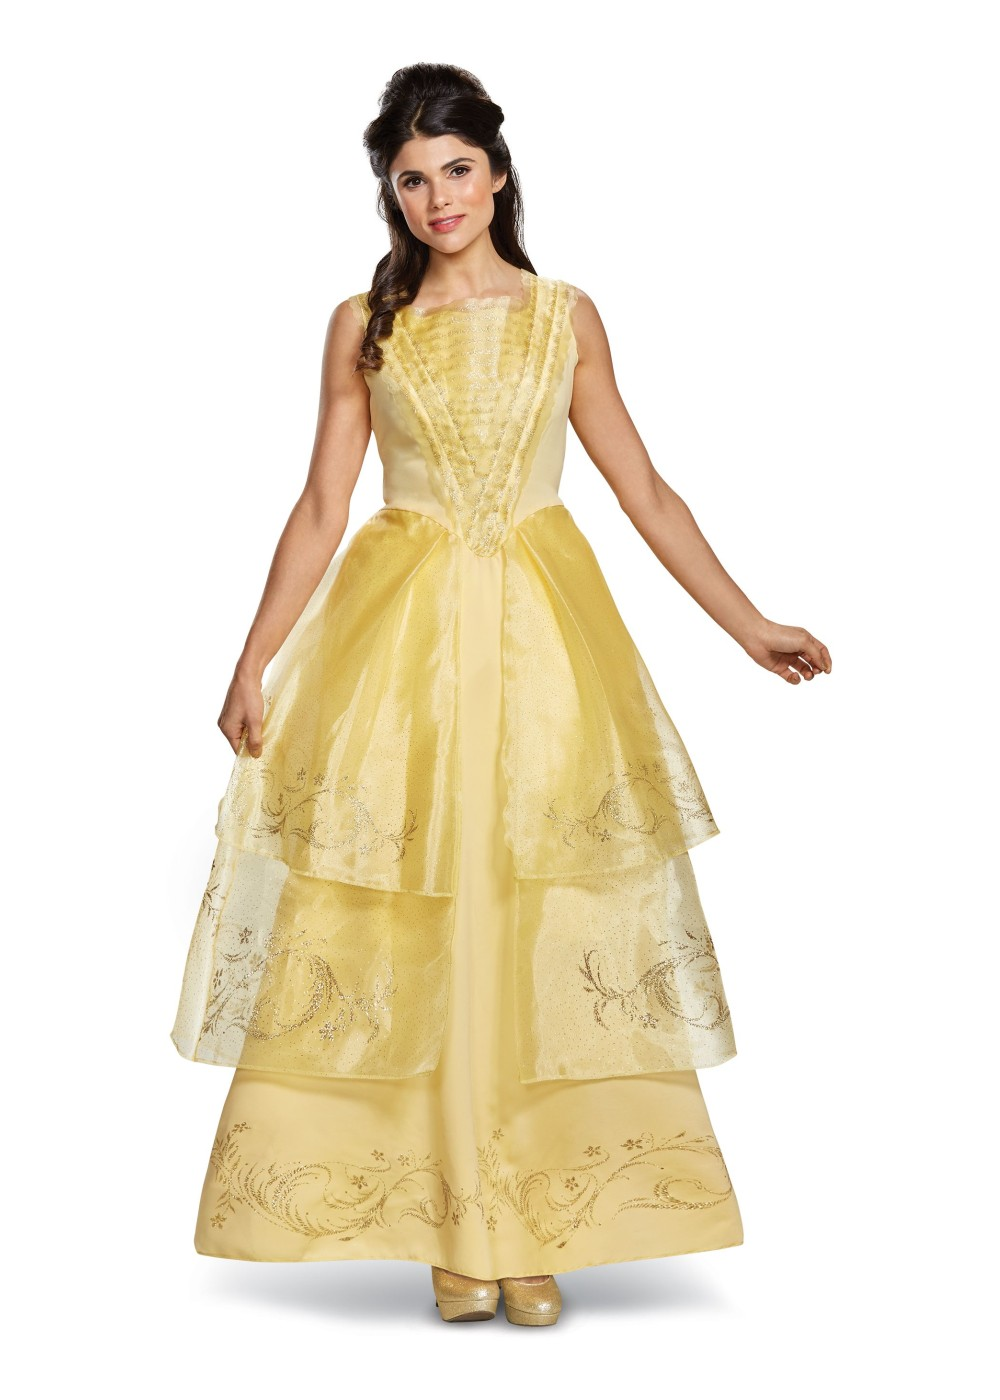 Belle Ball Women Costume